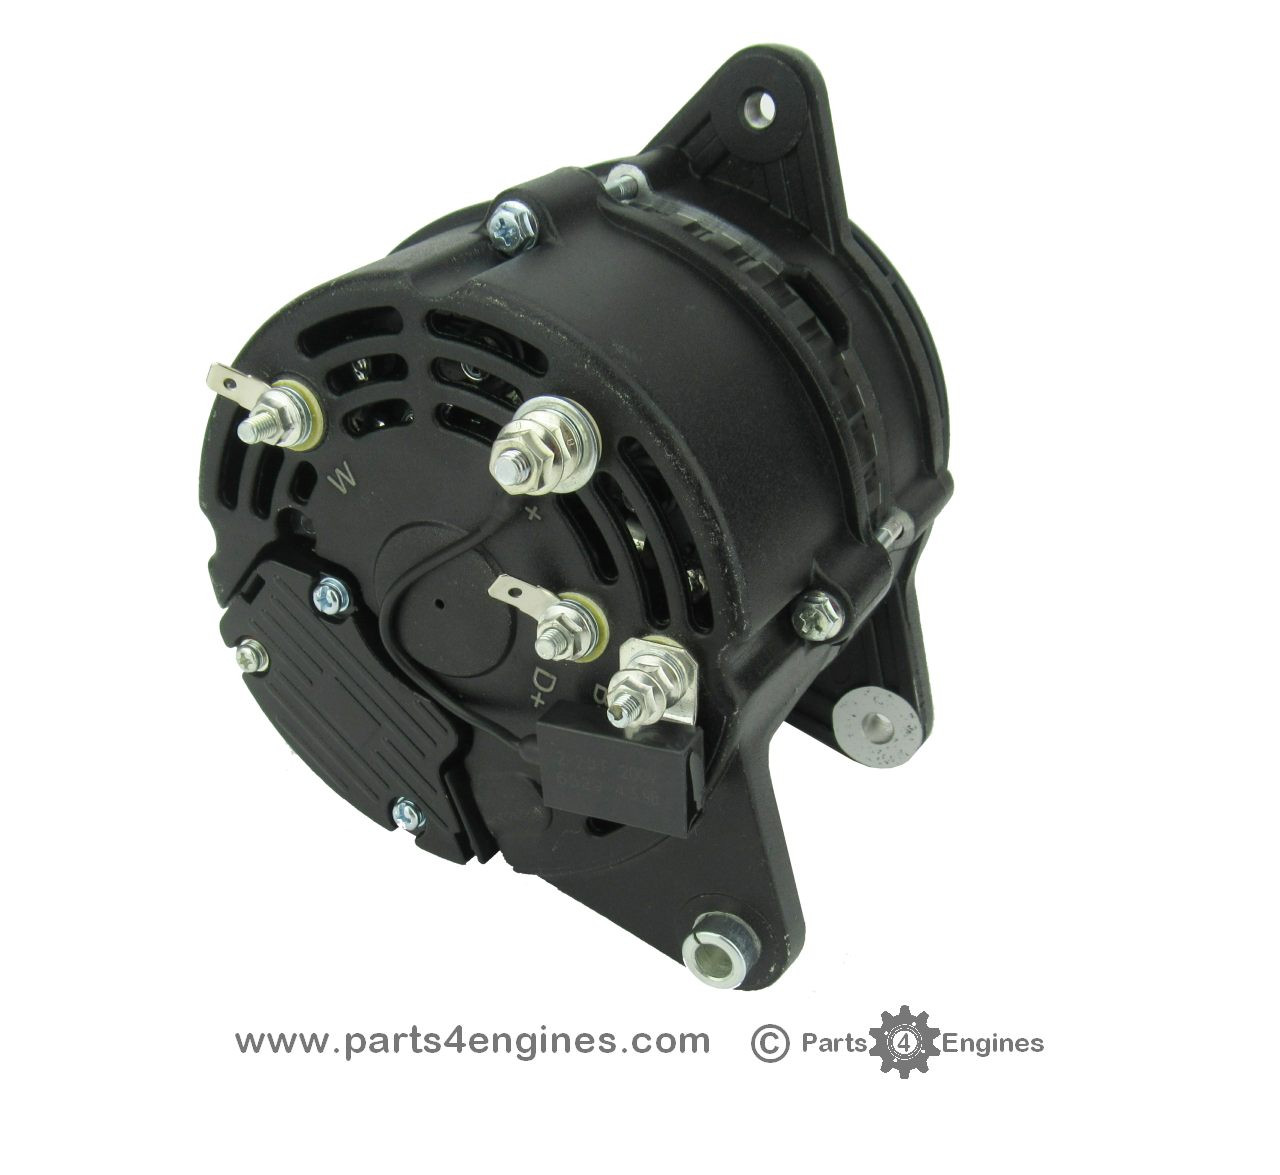 Perkins 4.236 90A high output (isolated earth) alternator from Parts4Engines.com